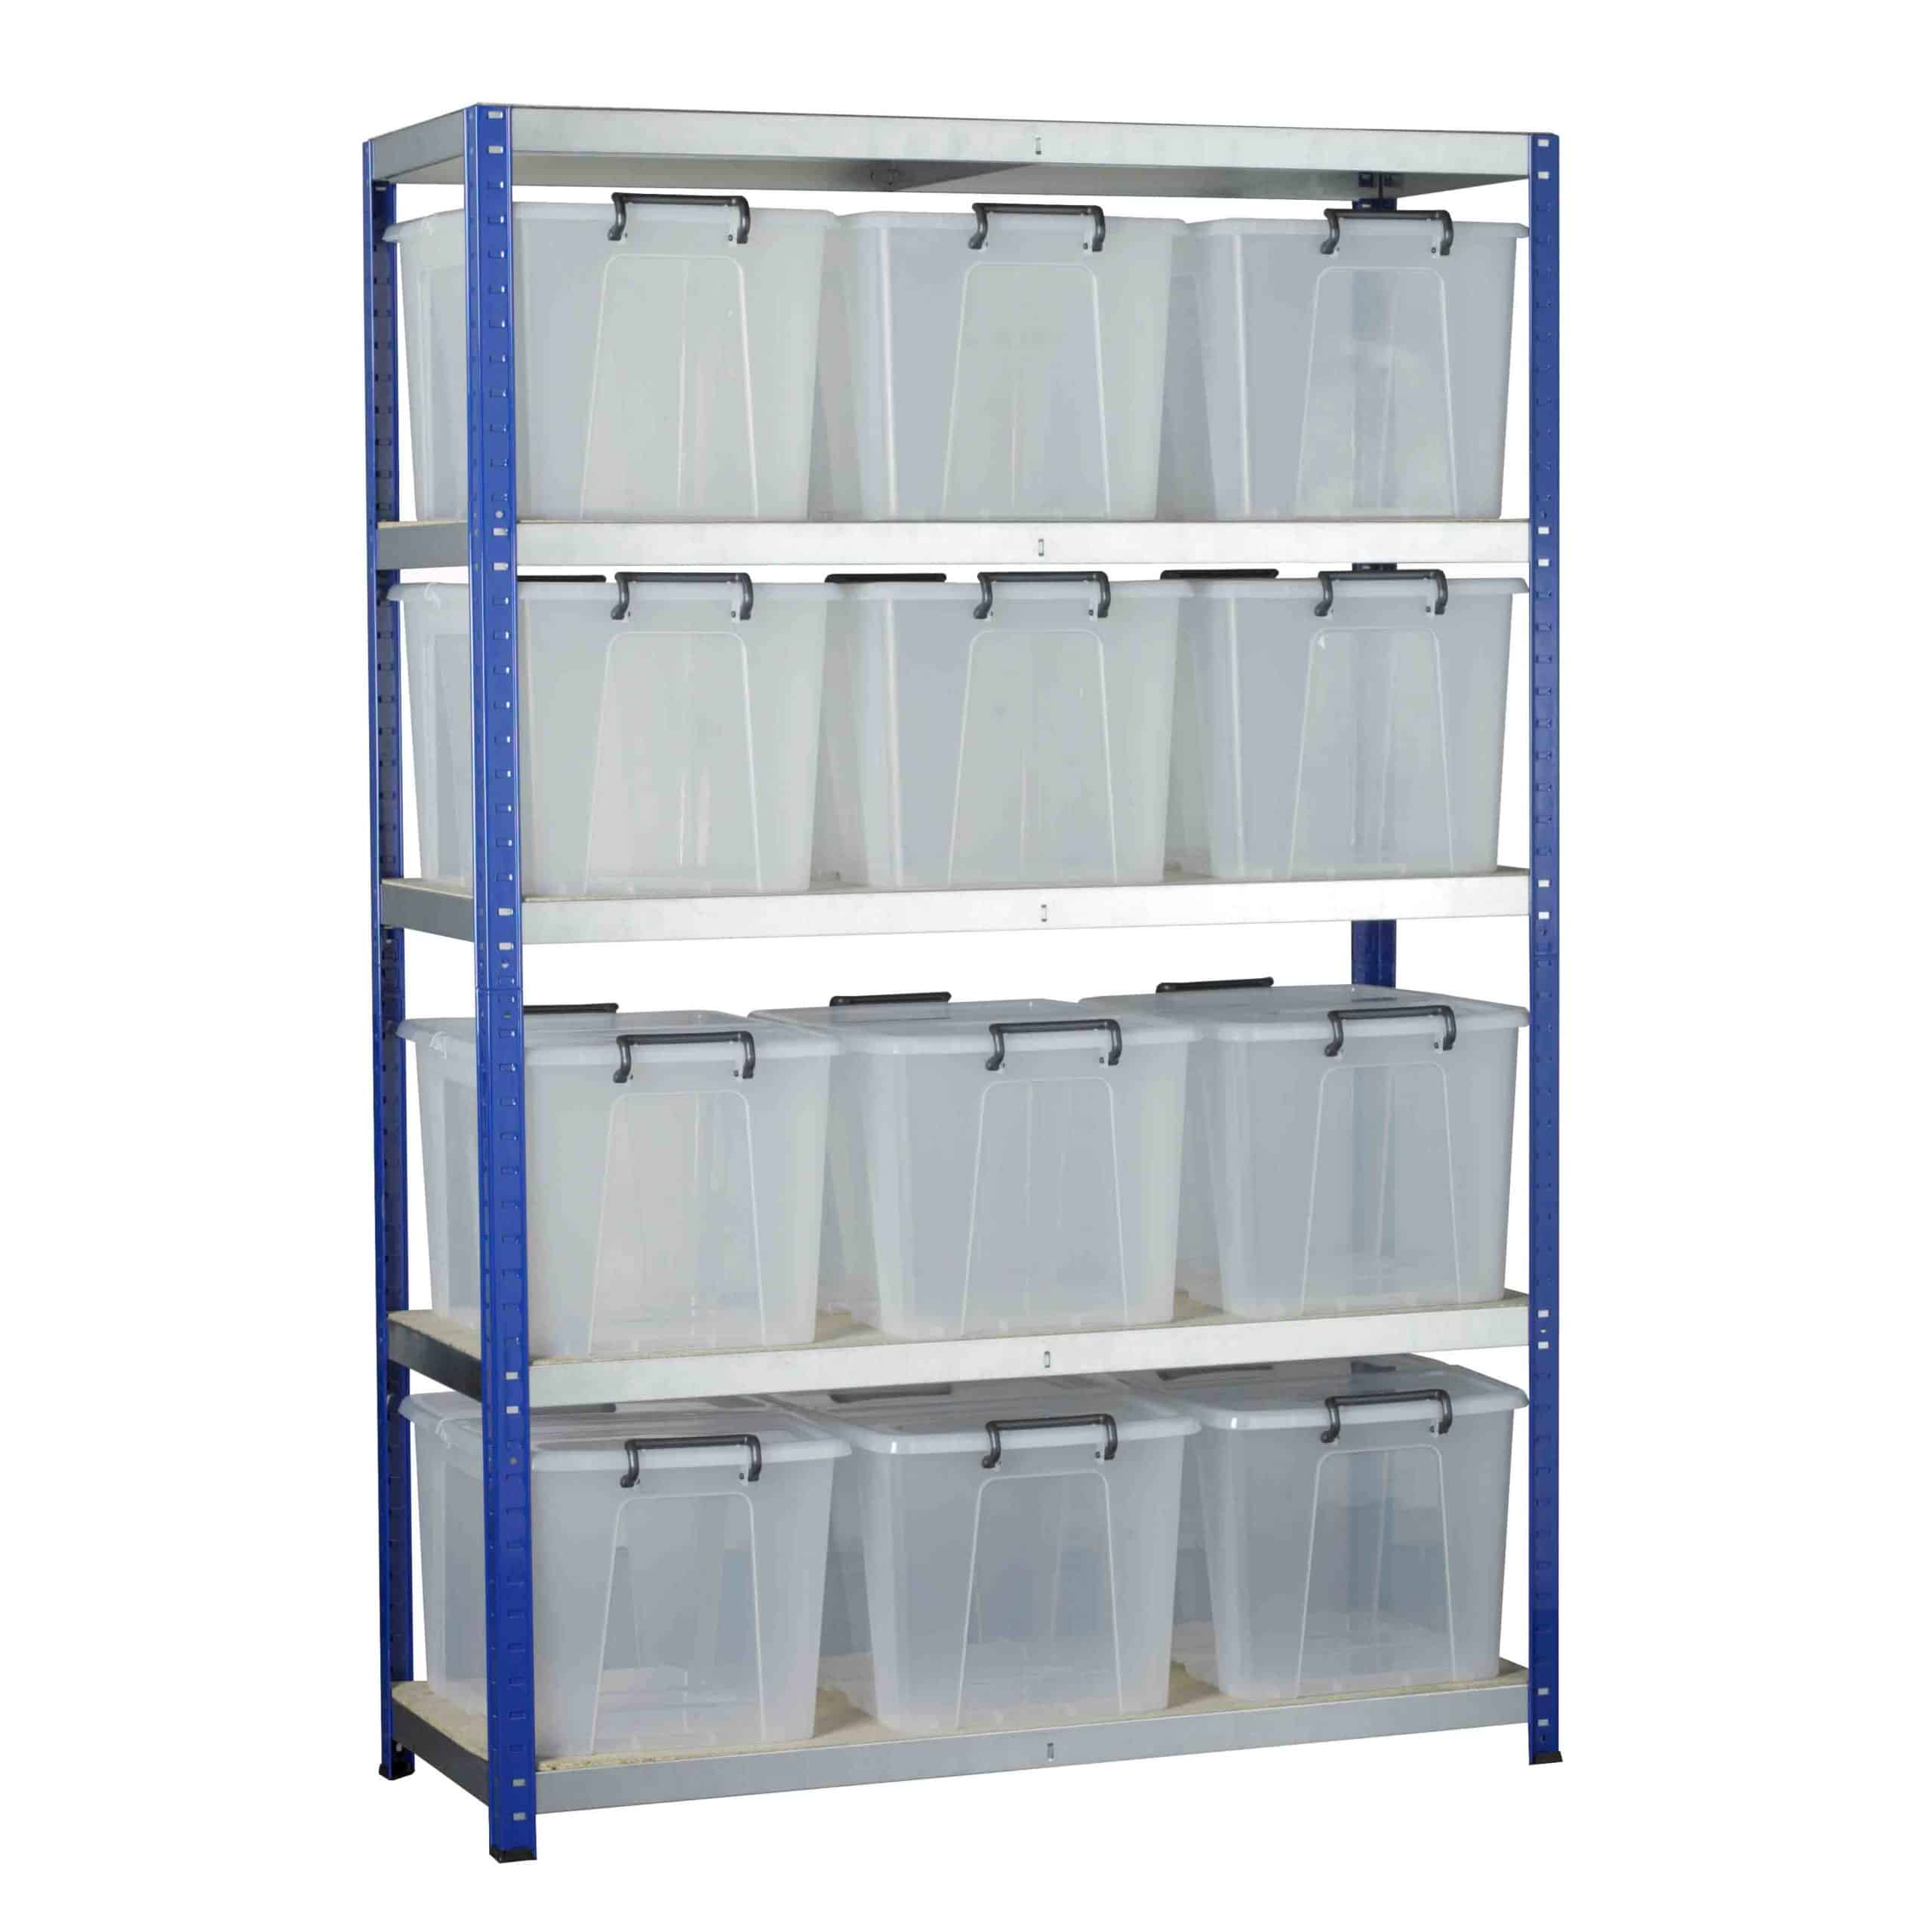 Ecorax Shelving with 12 Storemaster Containers